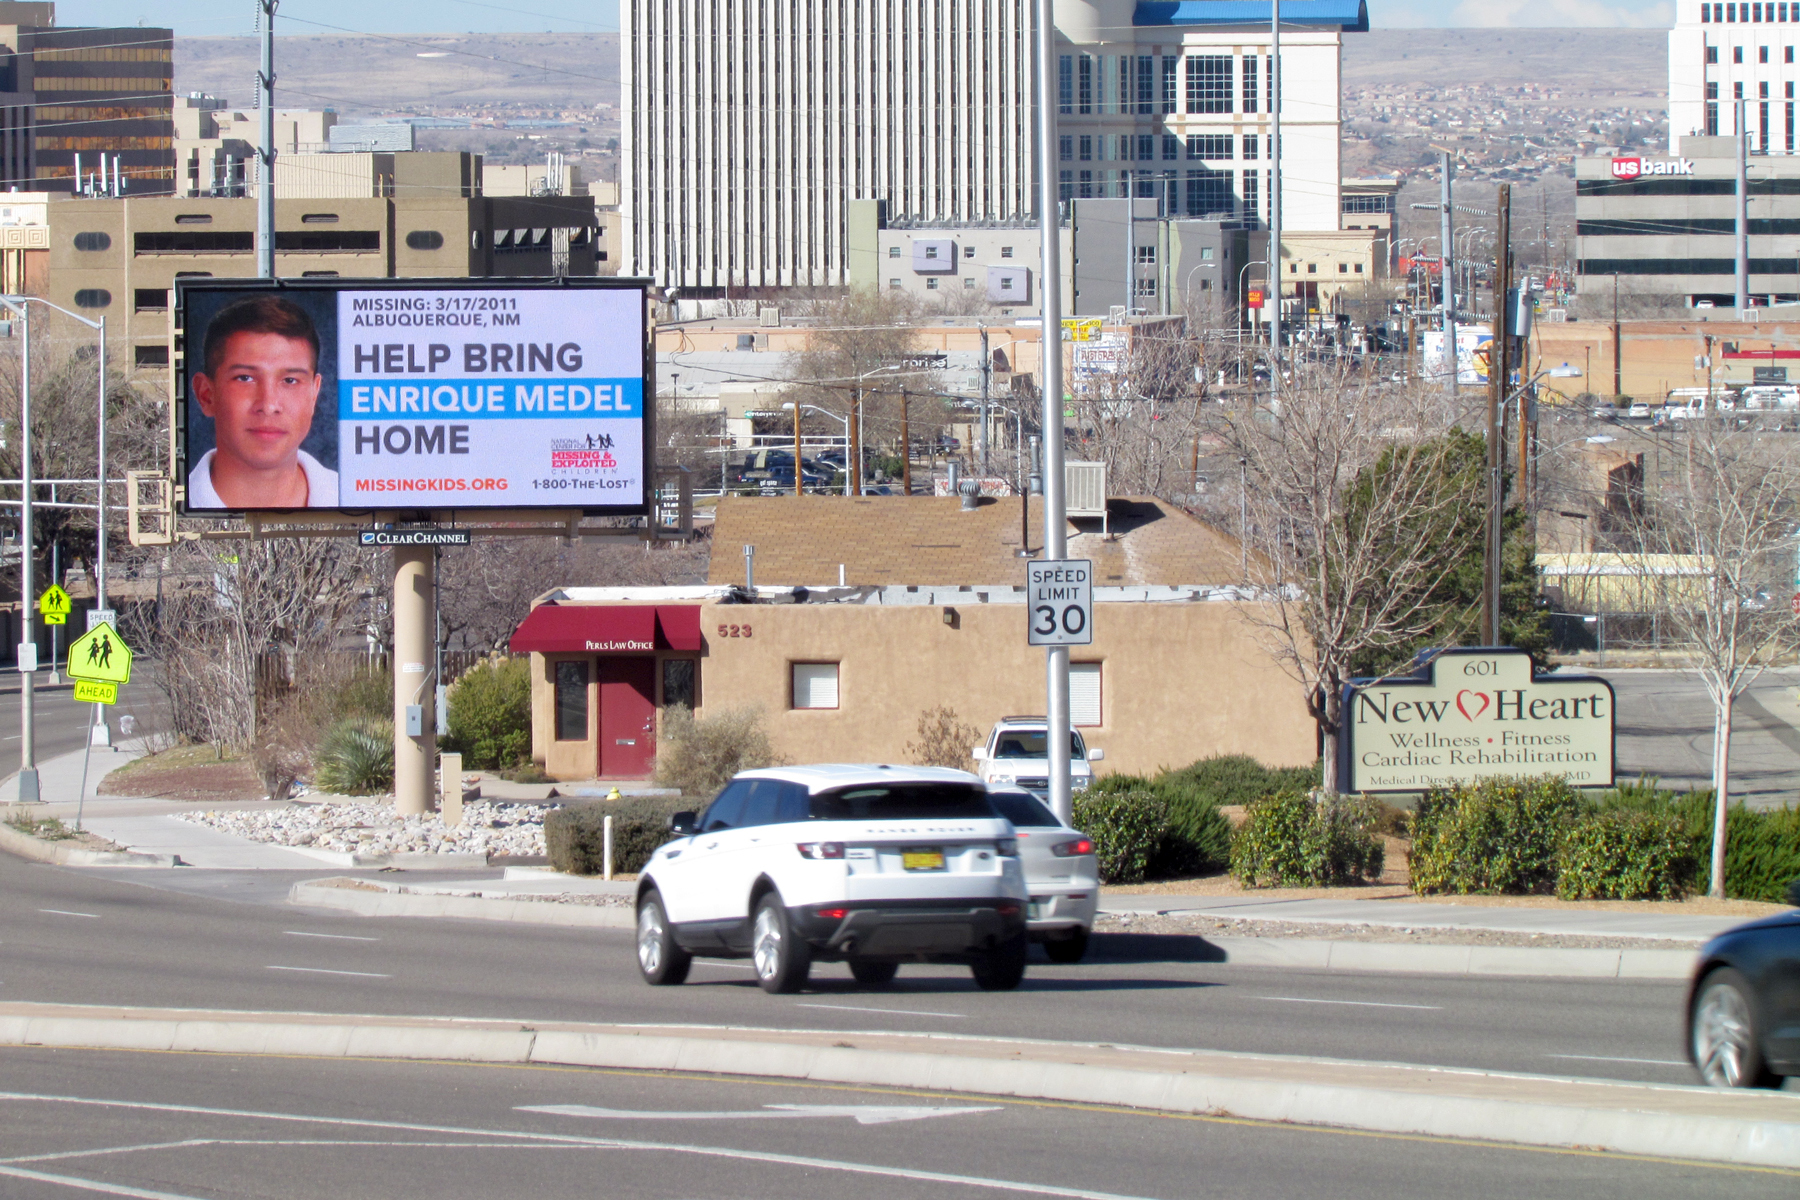 Digital billboards are up in Albuquerque, N.M. working to find Enrique Medel. (Photo: Business Wire)